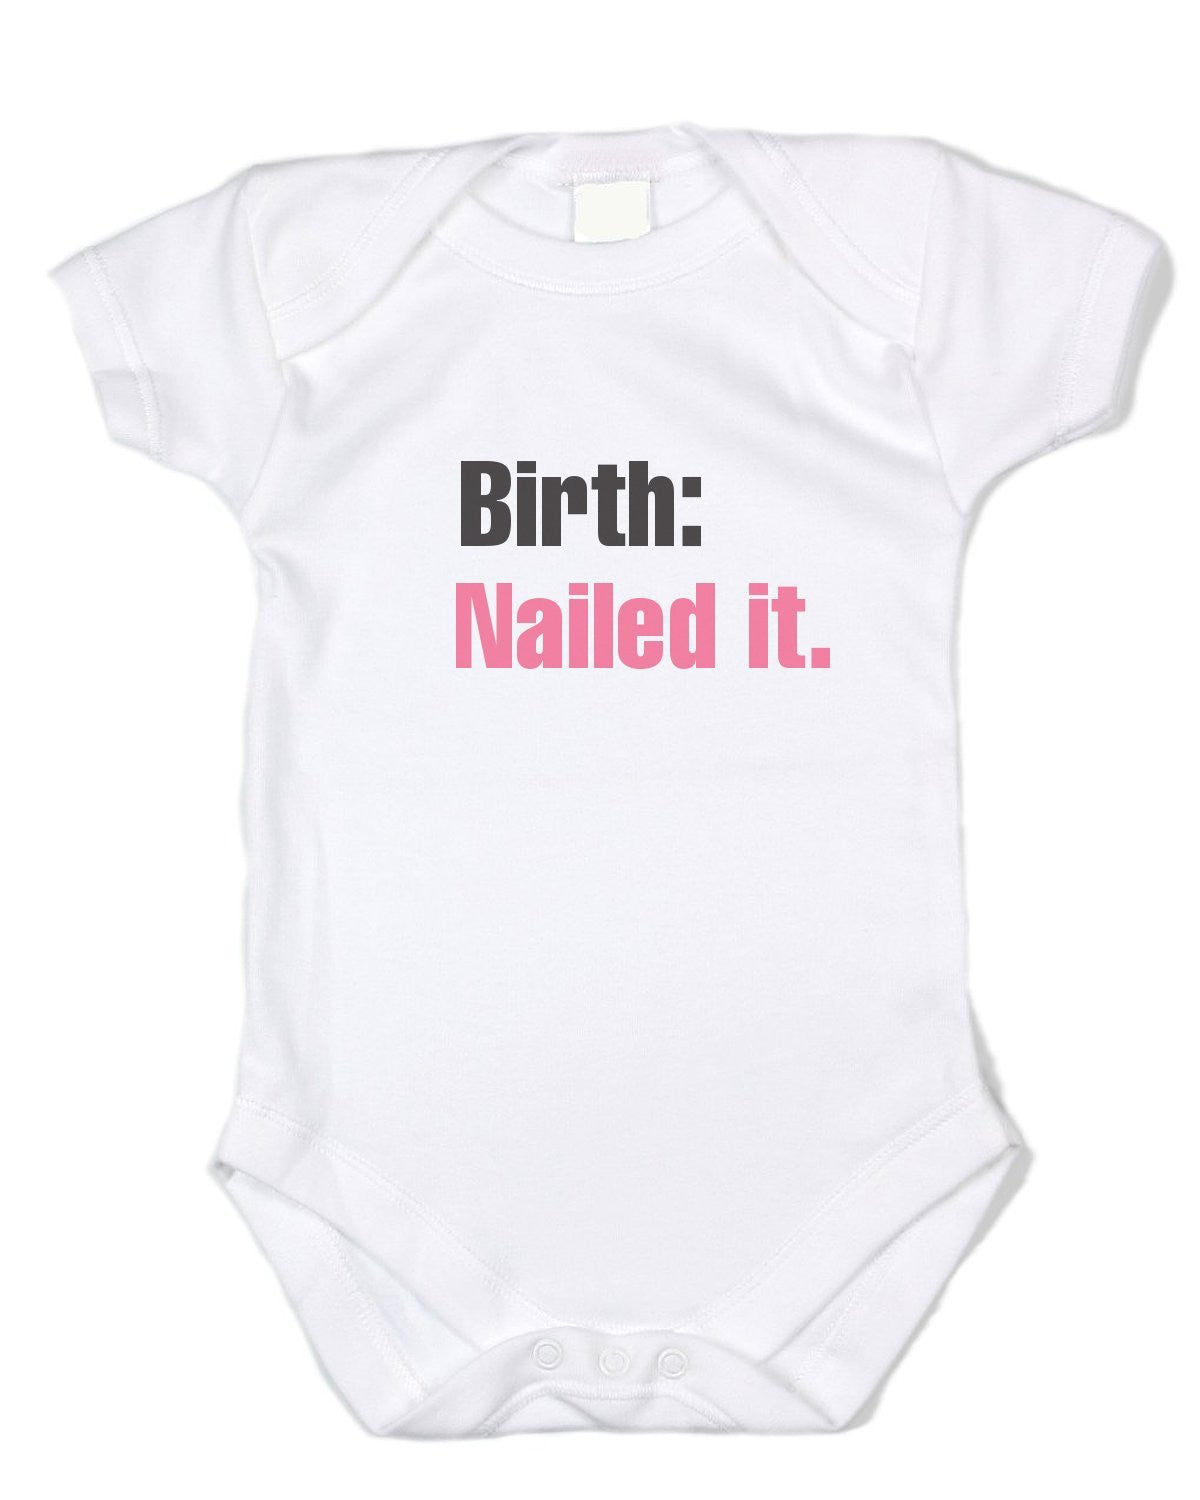 "Funny Baby Onesie ""Birth: Nailed It."" (Black and Pink Text) Infant Bodysuit"